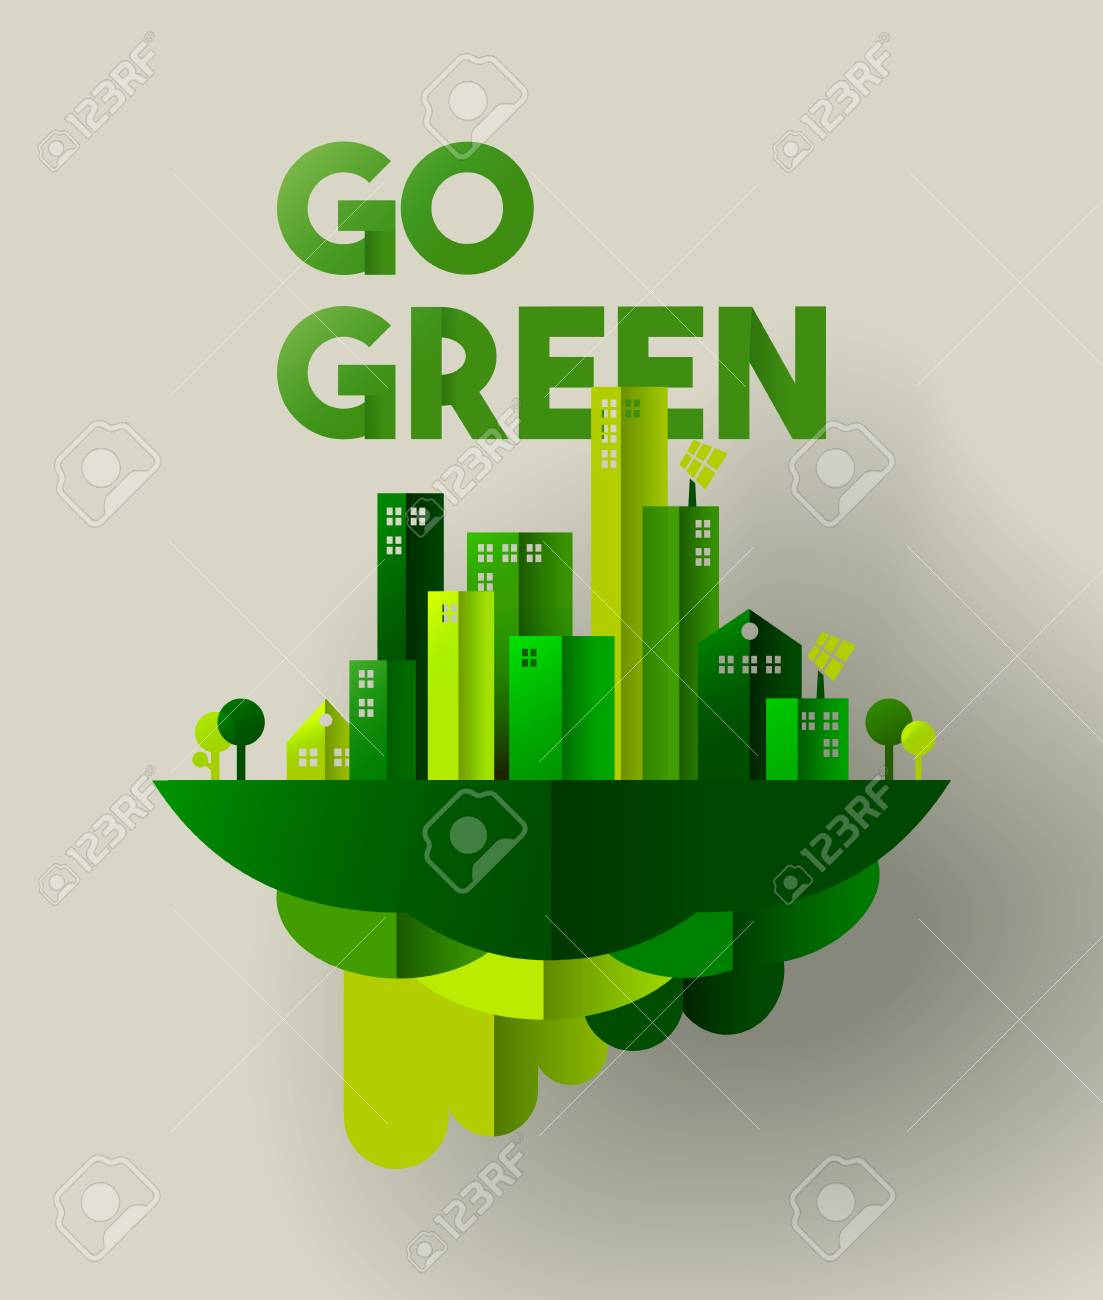 Eco friendly city concept illustration for sustainable urban lifestyle. Go green typography quote with houses and towers in paper cut style. EPS10 vector. - 96841508